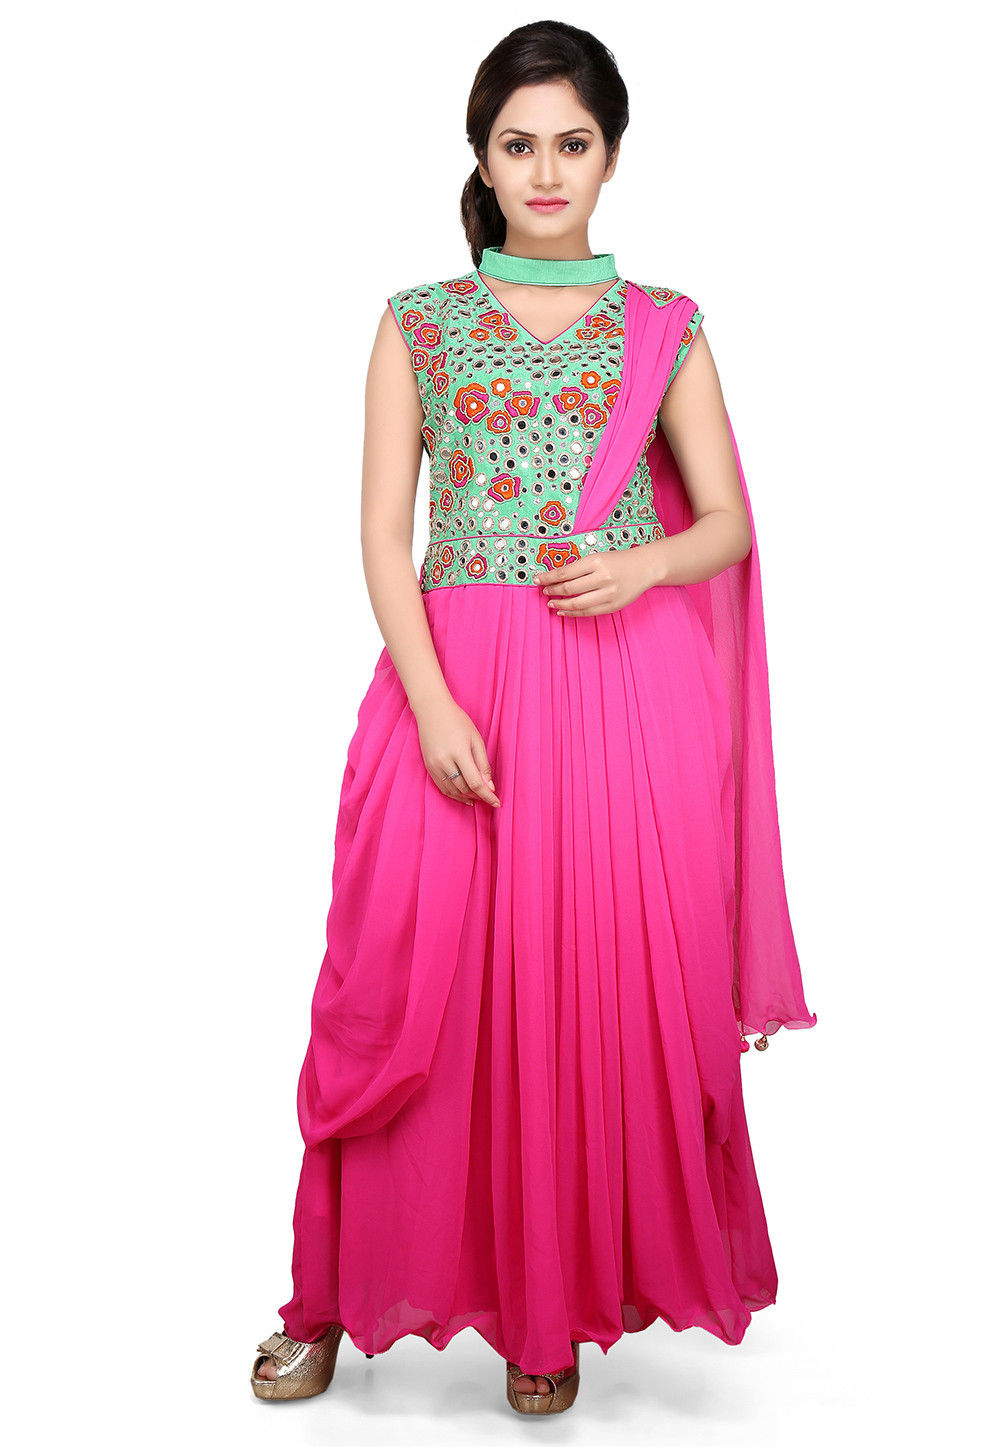 Embroidered Georgette Pleated Saree Style Gown in Pink and Teal Green